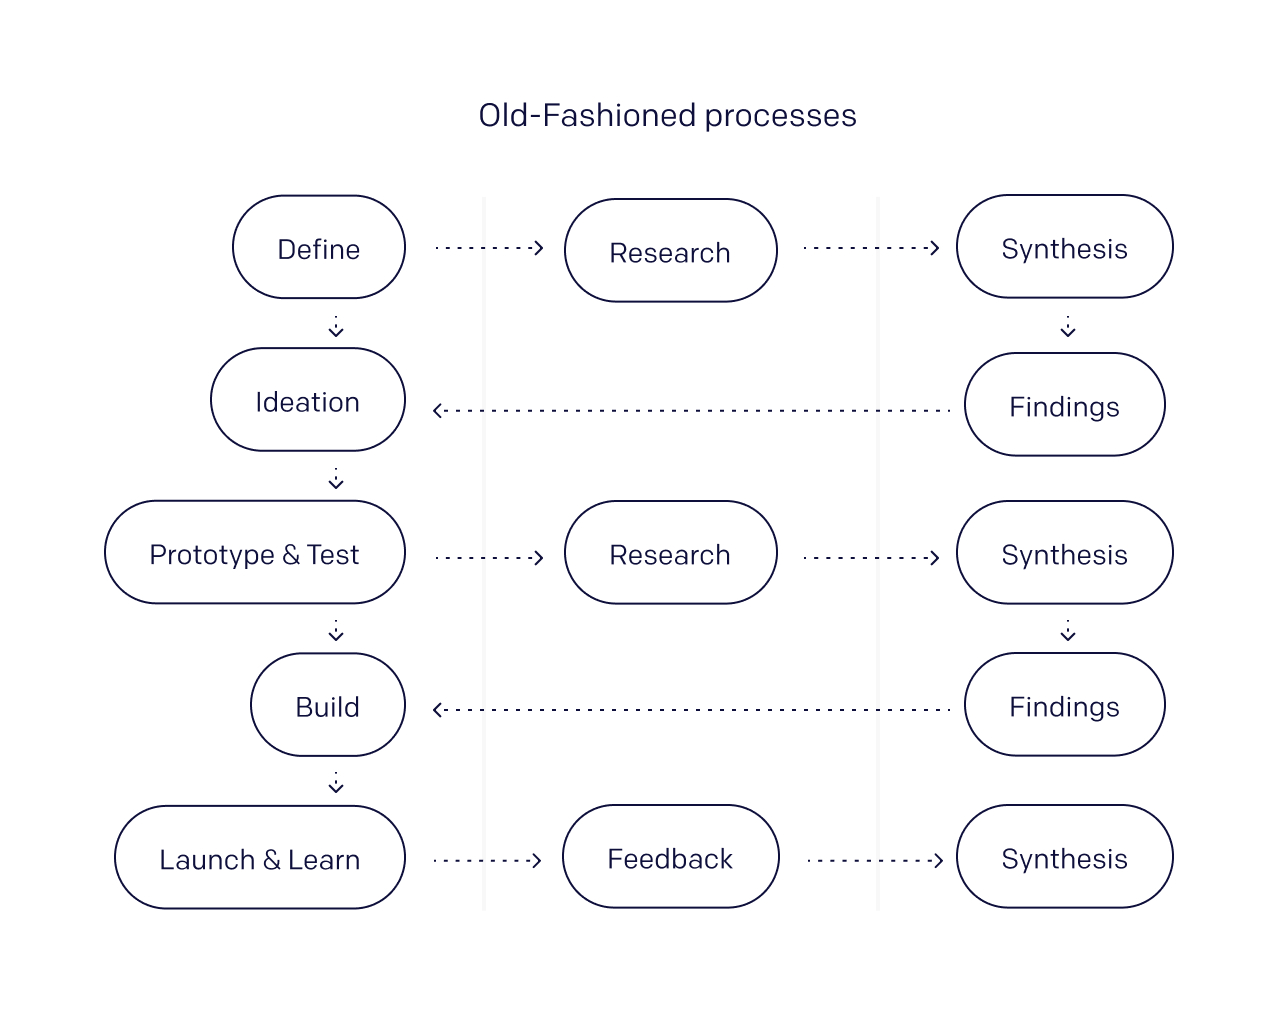 A depiction of how research synthesis complicates and drags critical customer discovery processes.